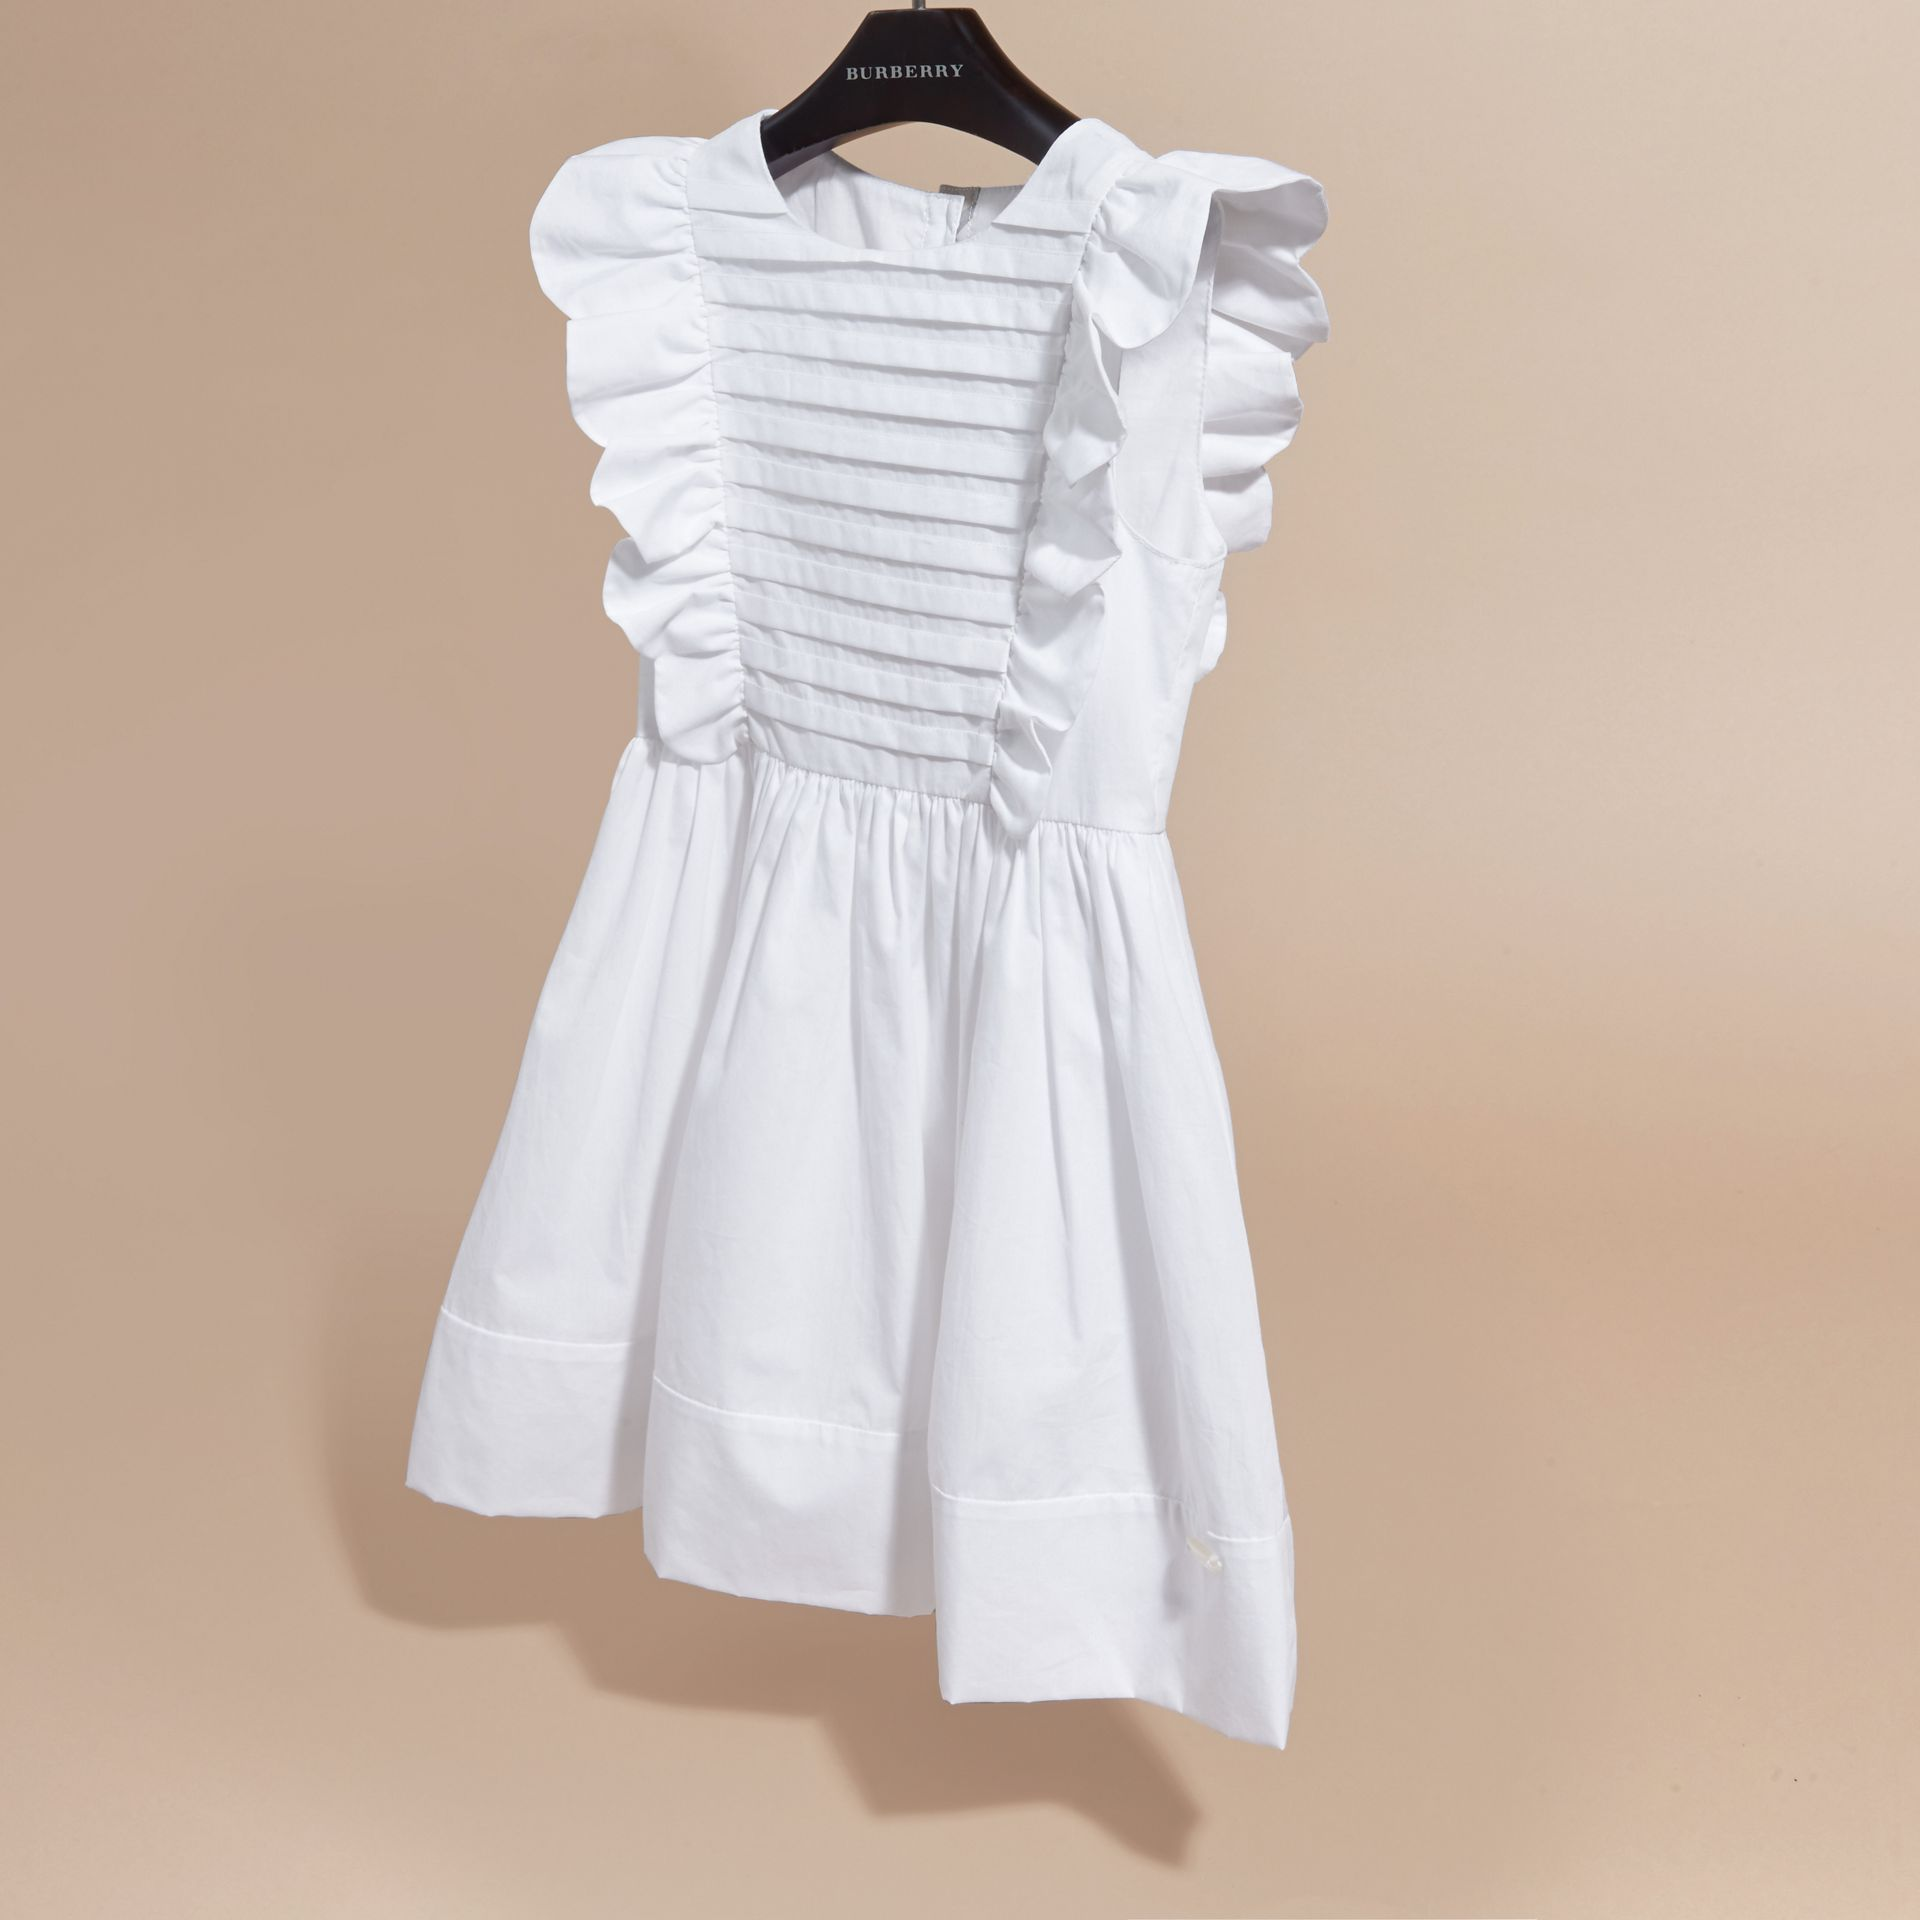 Ruffle and Pleat Detail Cotton Dress in White | Burberry - gallery image 3